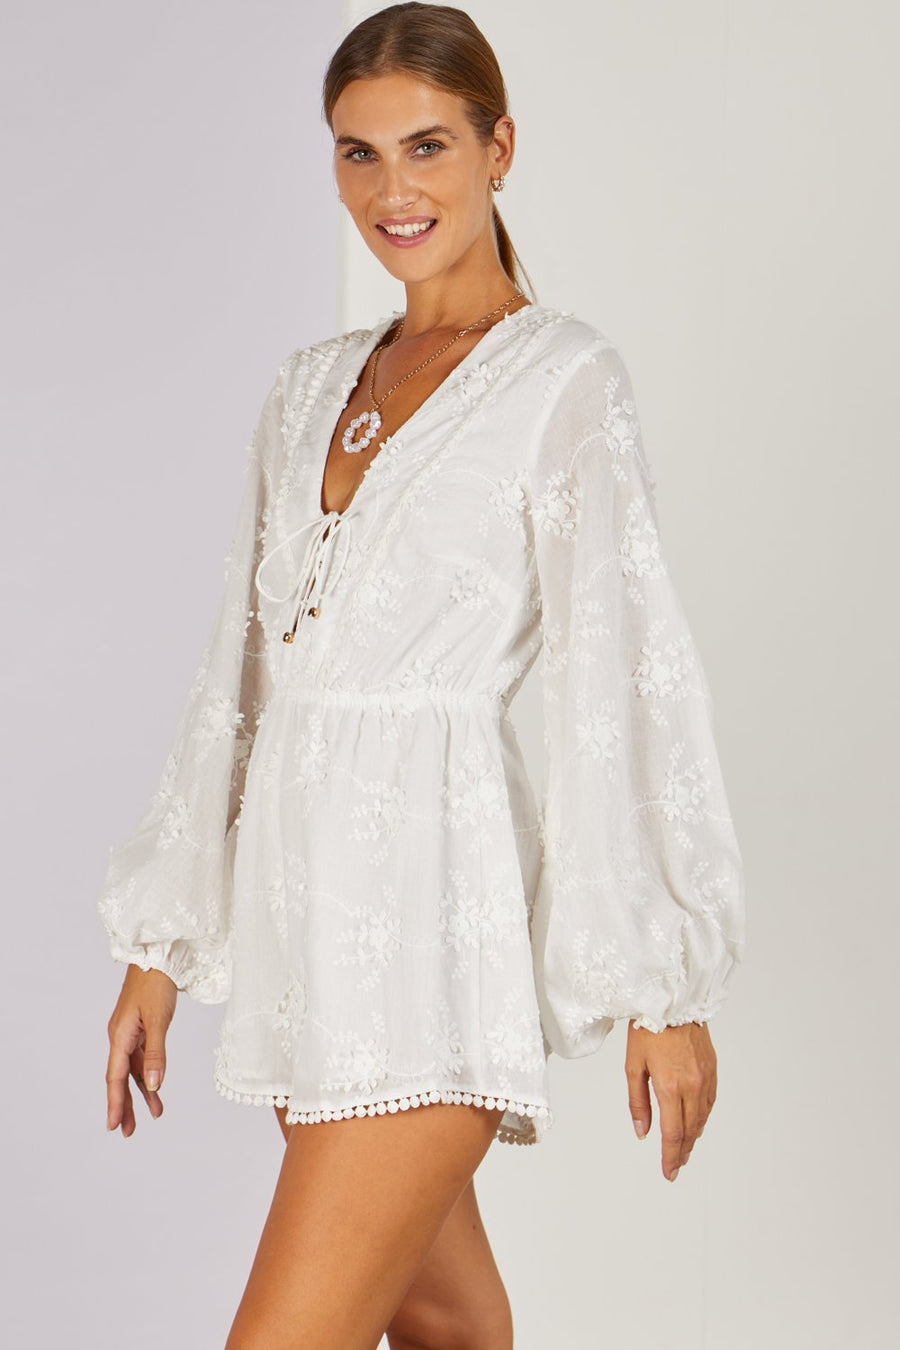 Madelie White Broderie Playsuit